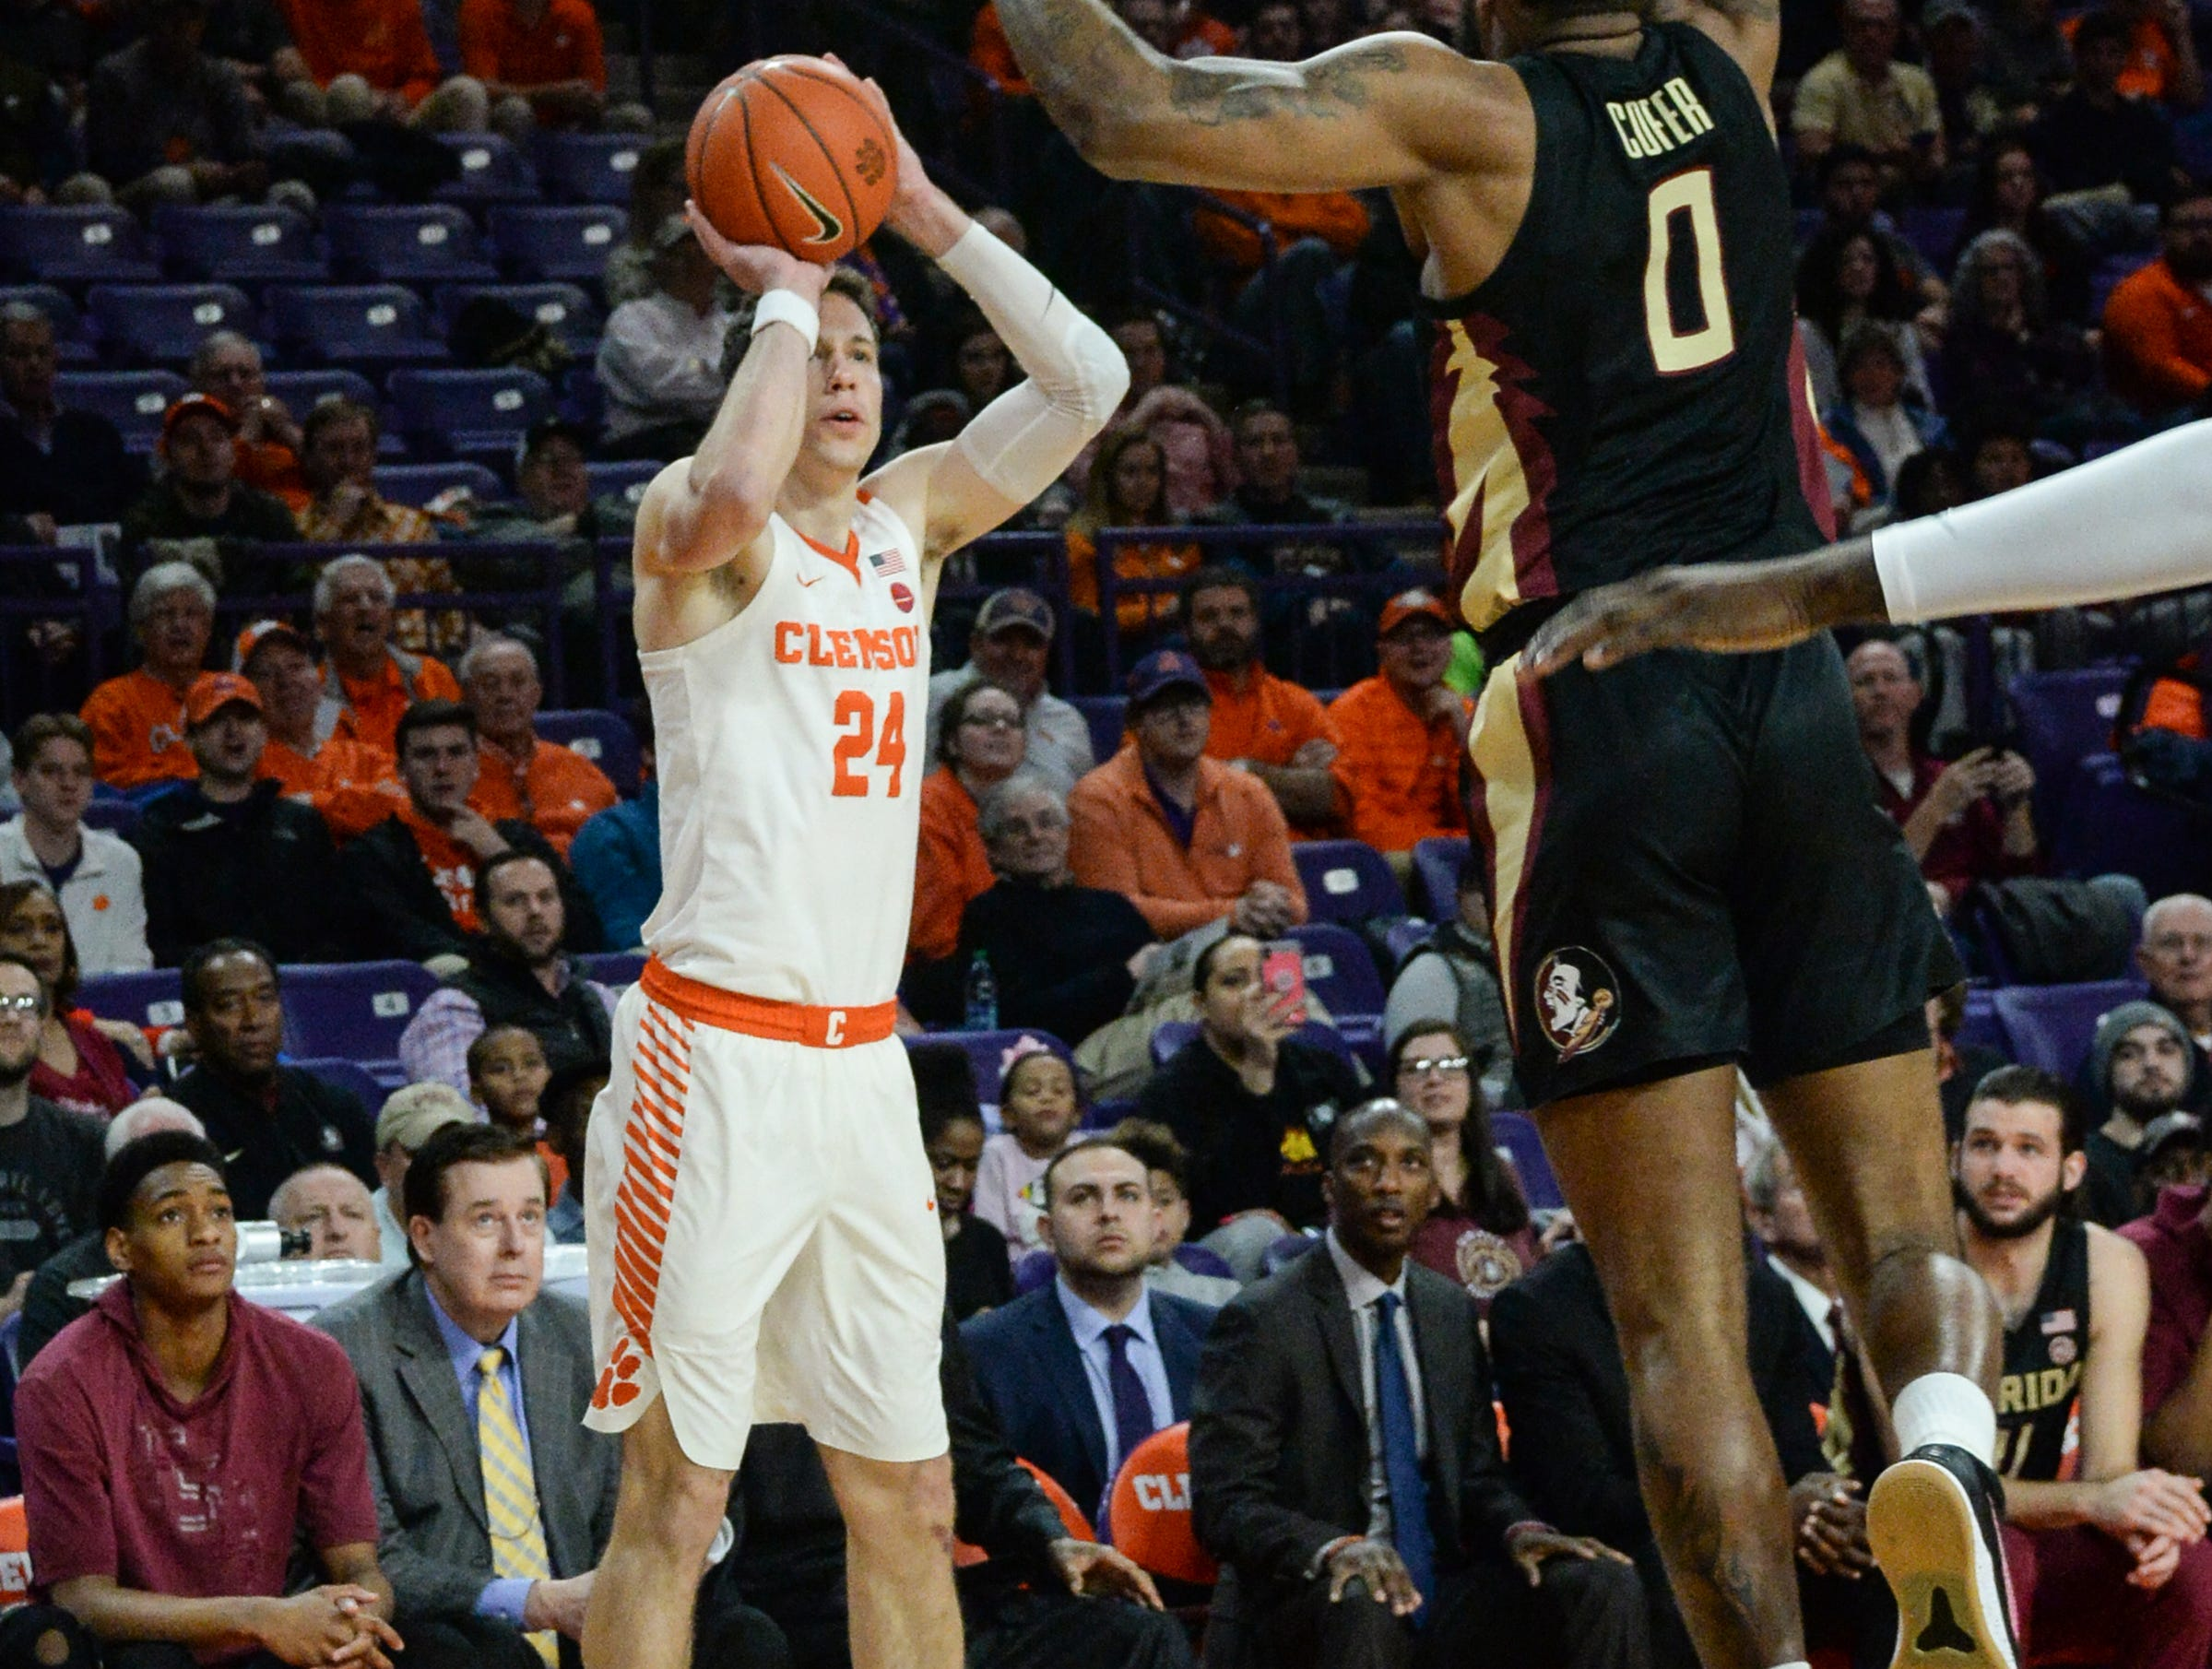 Clemson forward David Skara (24) shoots near Florida State forward Phil Cofer(0) during the first half at Littlejohn Coliseum in Clemson Tuesday, February 19, 2019.